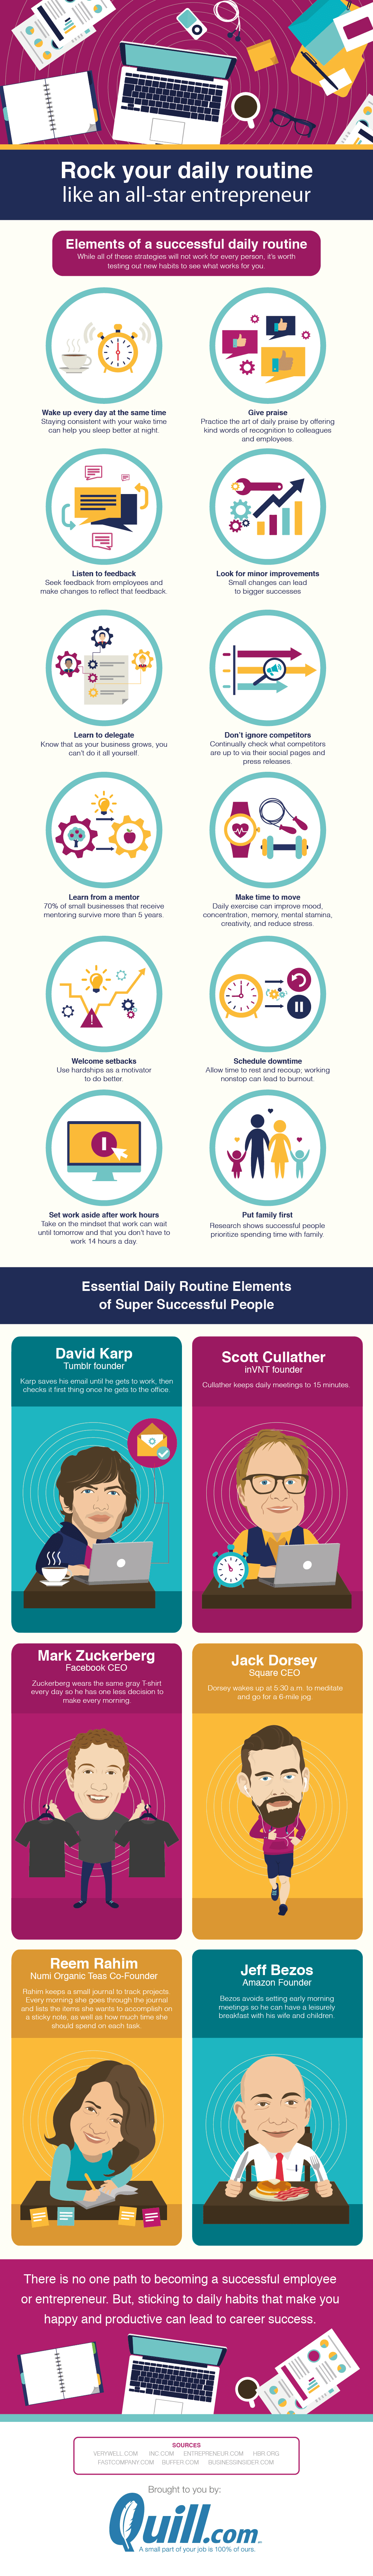 Transform Your Daily Routine Into That Of An All-Star Entrepreneur - Infographic